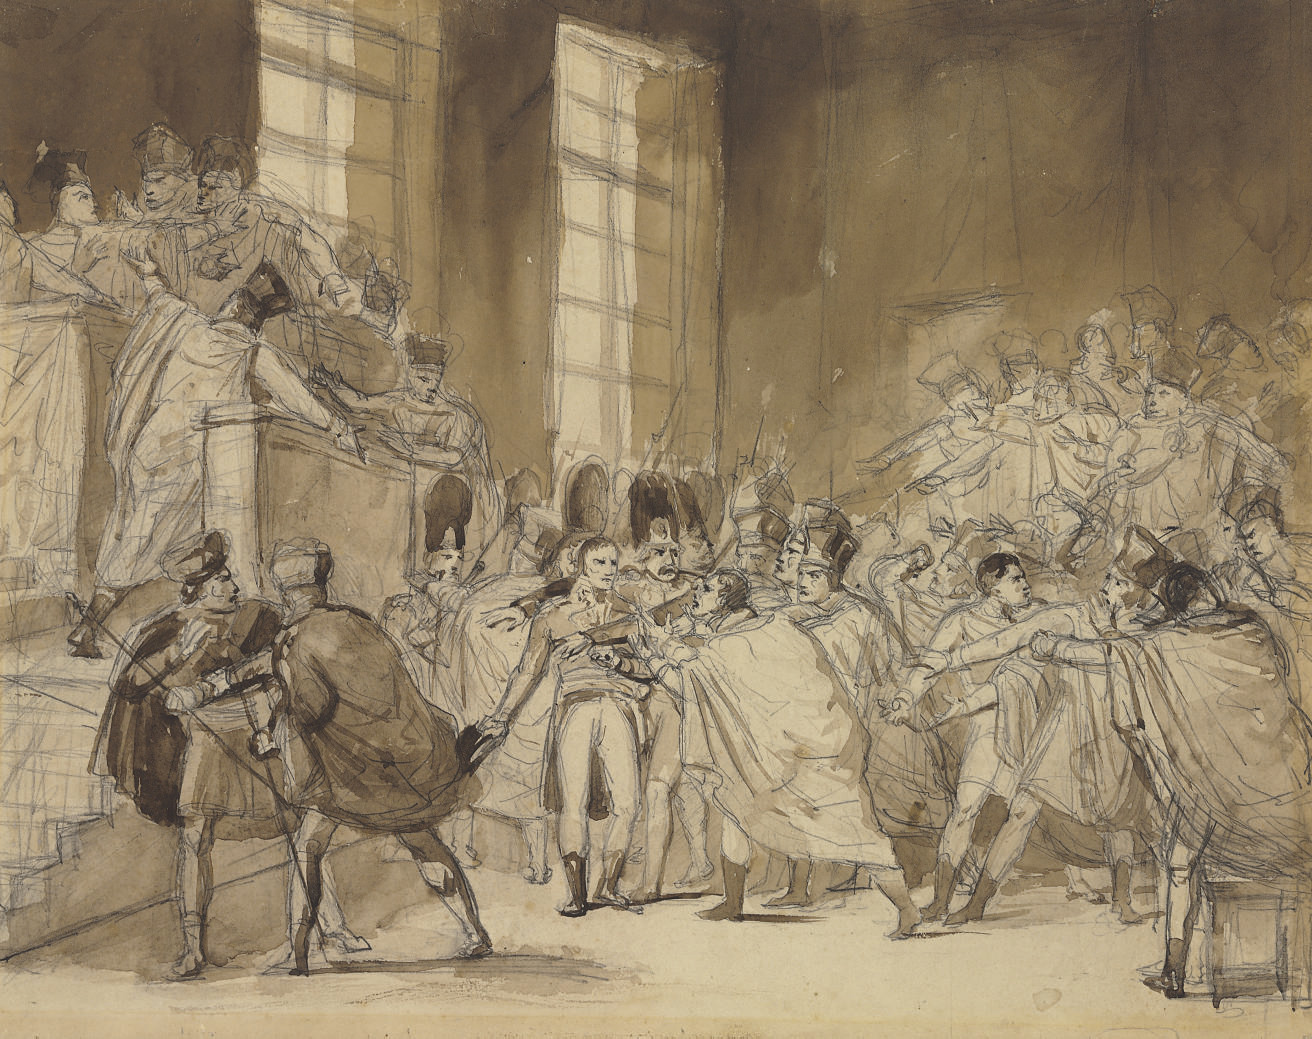 The Coup of XVIII Brumaire: Bonaparte before the Council of Five Hundred